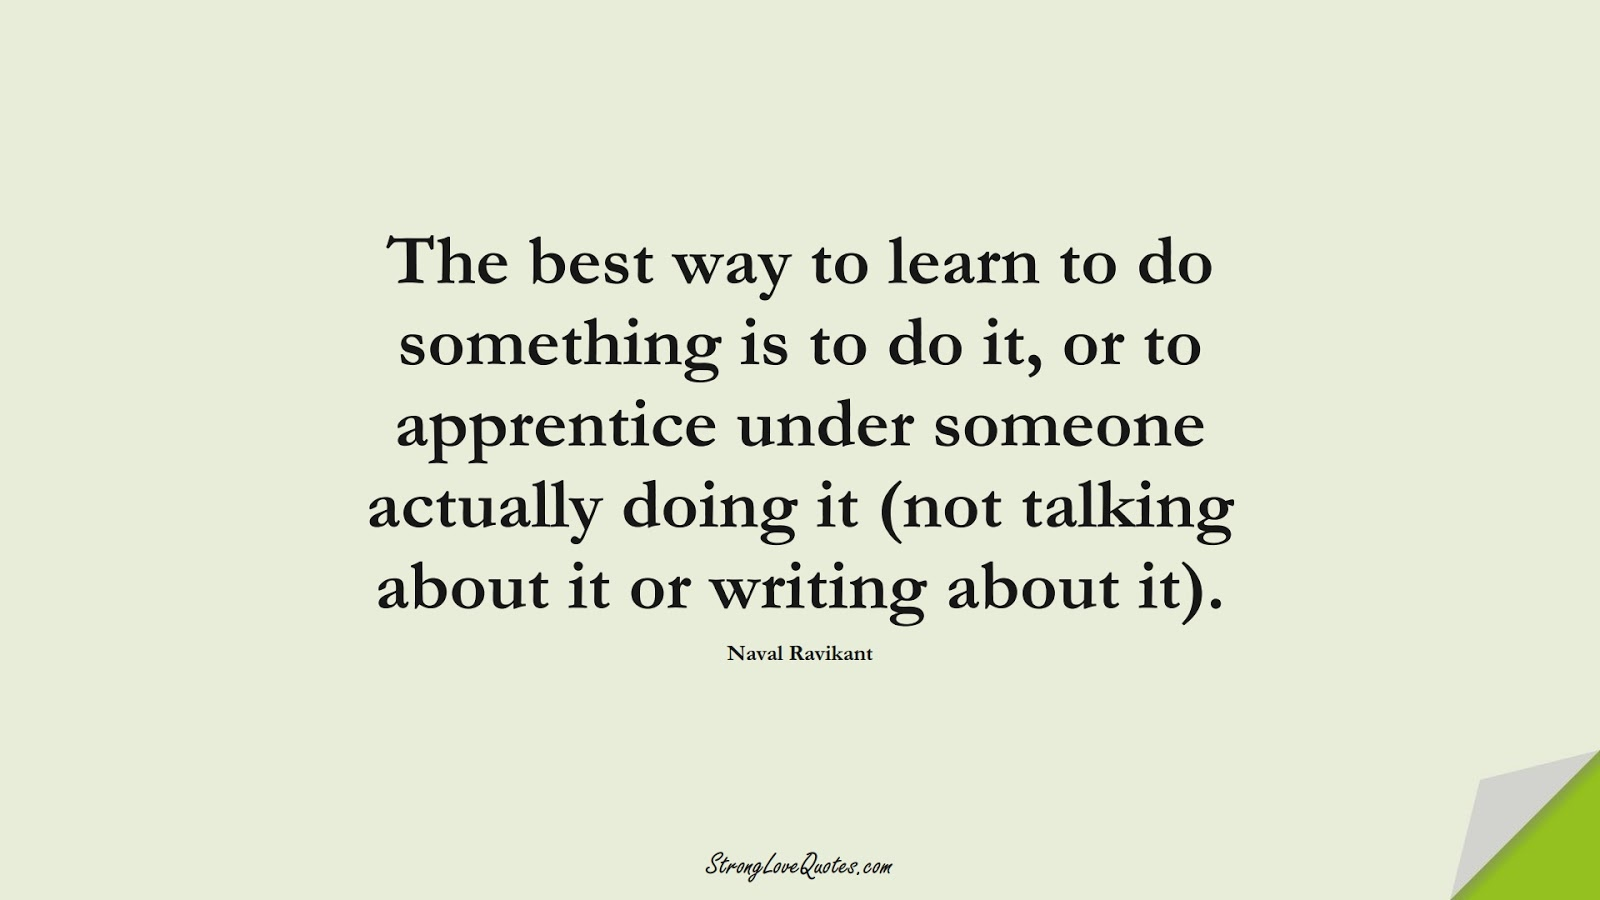 The best way to learn to do something is to do it, or to apprentice under someone actually doing it (not talking about it or writing about it). (Naval Ravikant);  #LearningQuotes